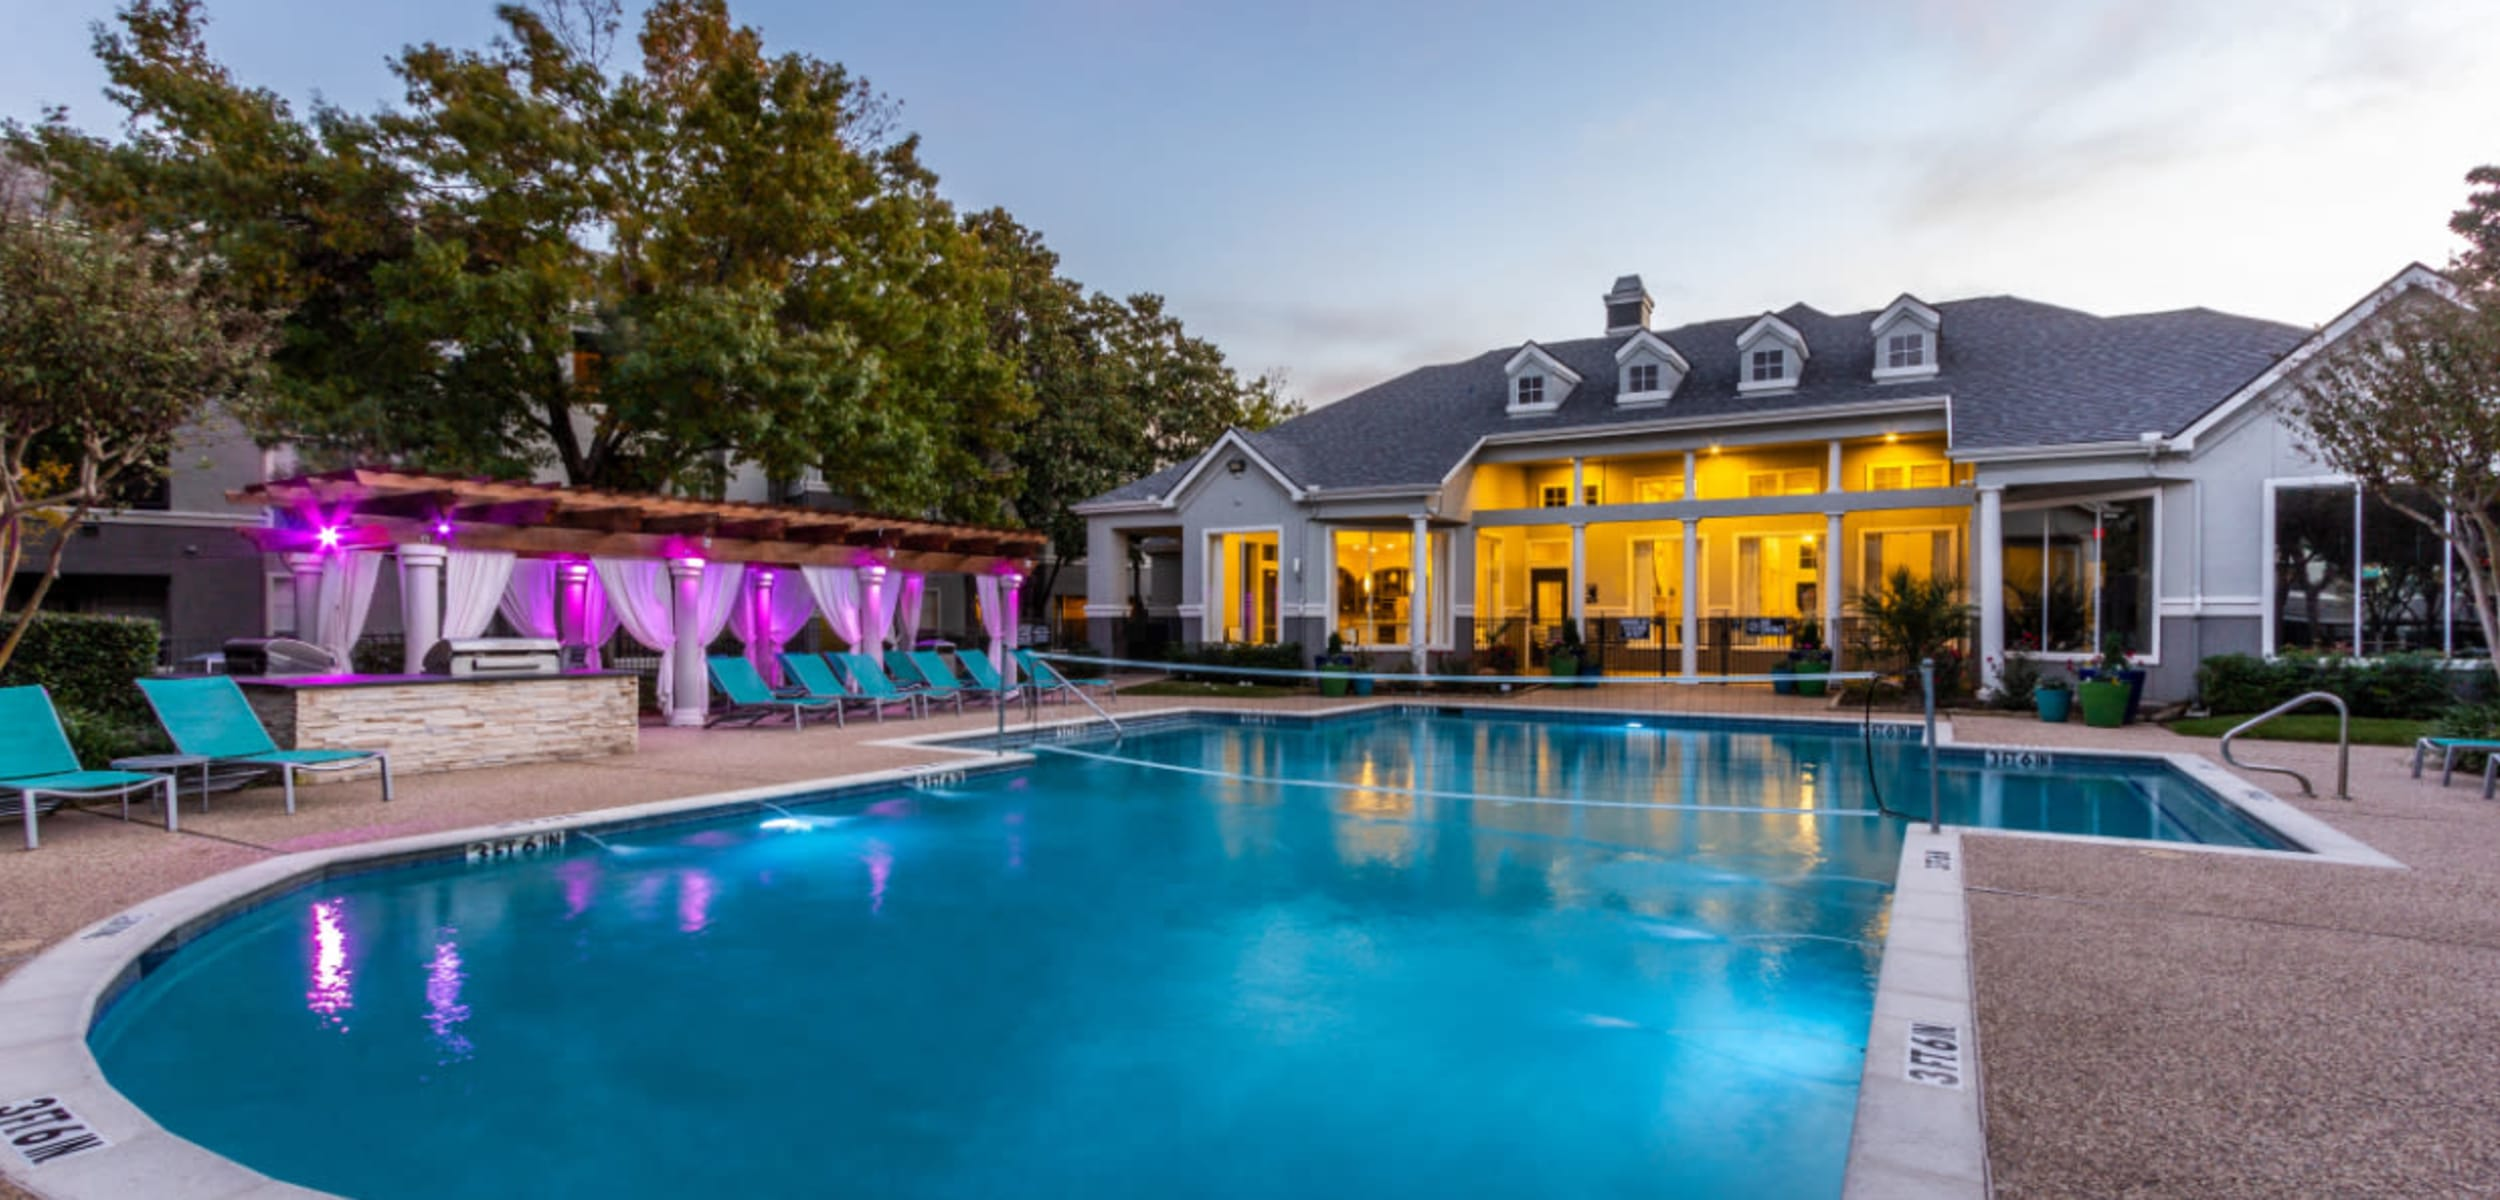 Pool with volleyball net, clubhouse, and colorful lights lounge area at sunset at Marquis at Stonegate in Fort Worth Texas,